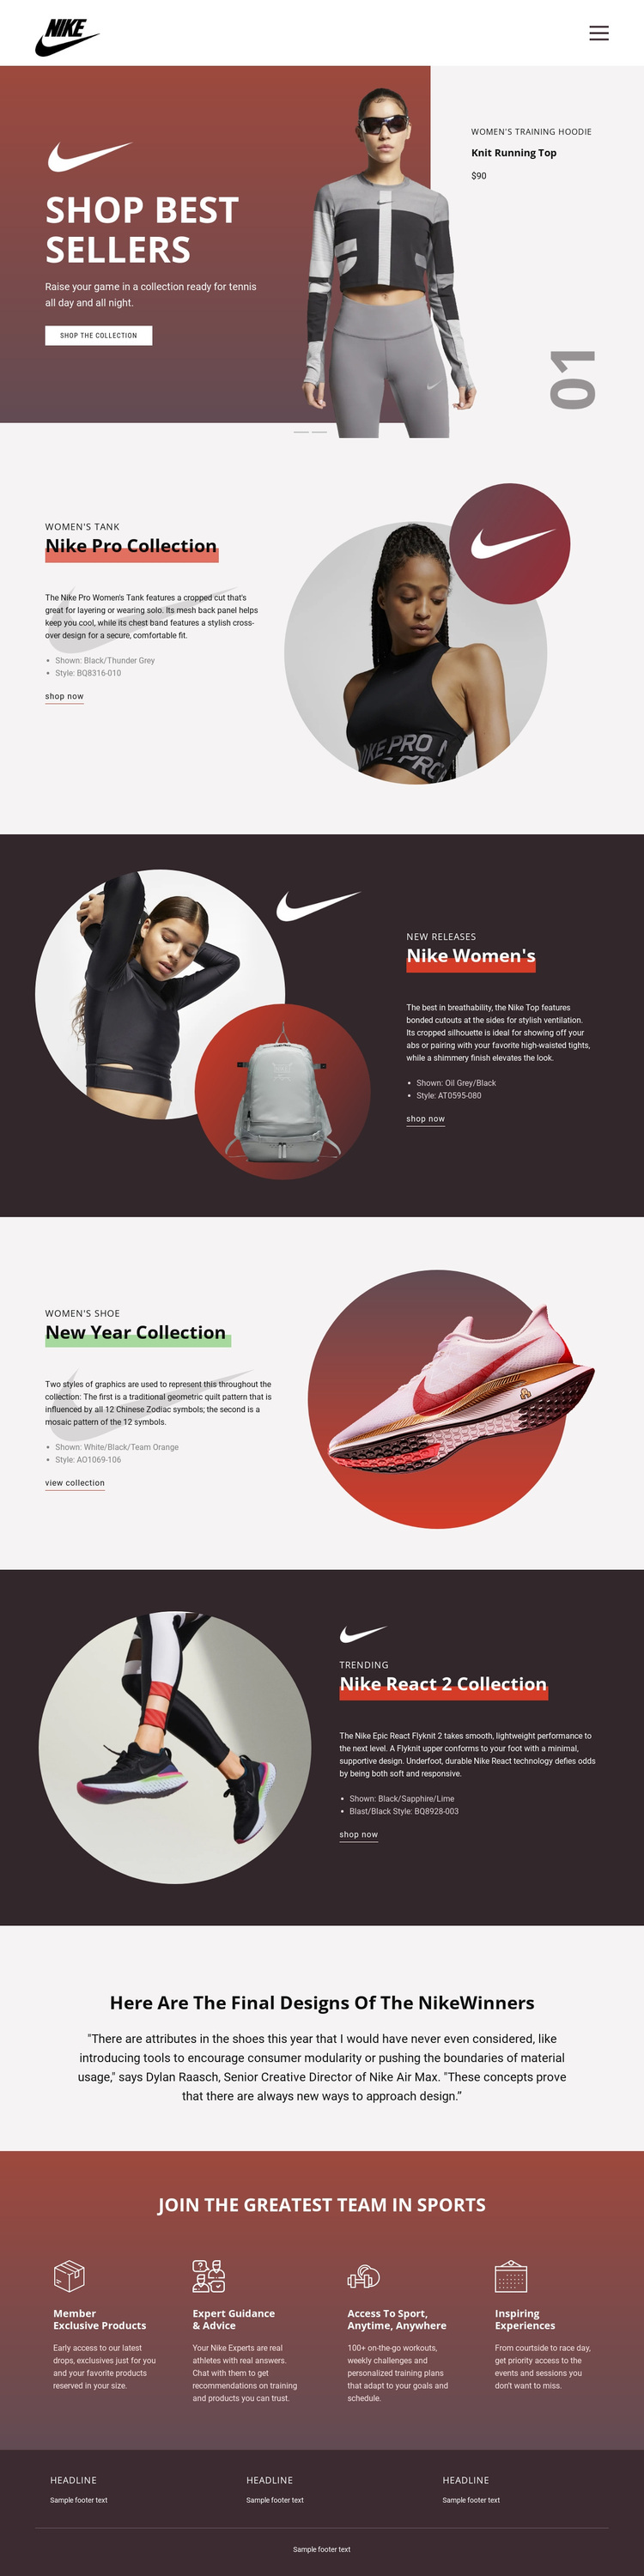 Best sellers for sports Template